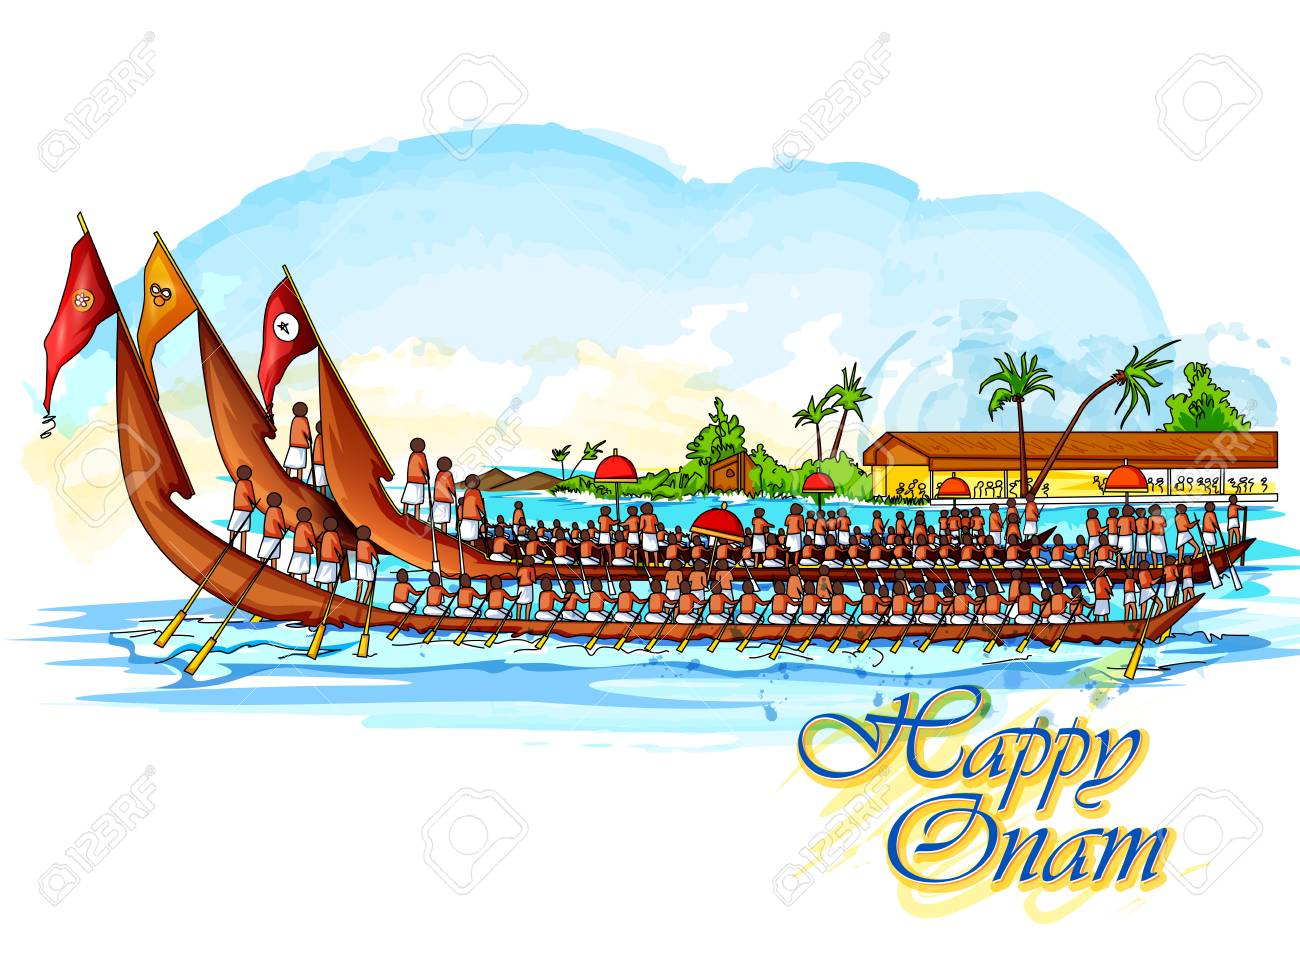 3447 Boat free clipart.